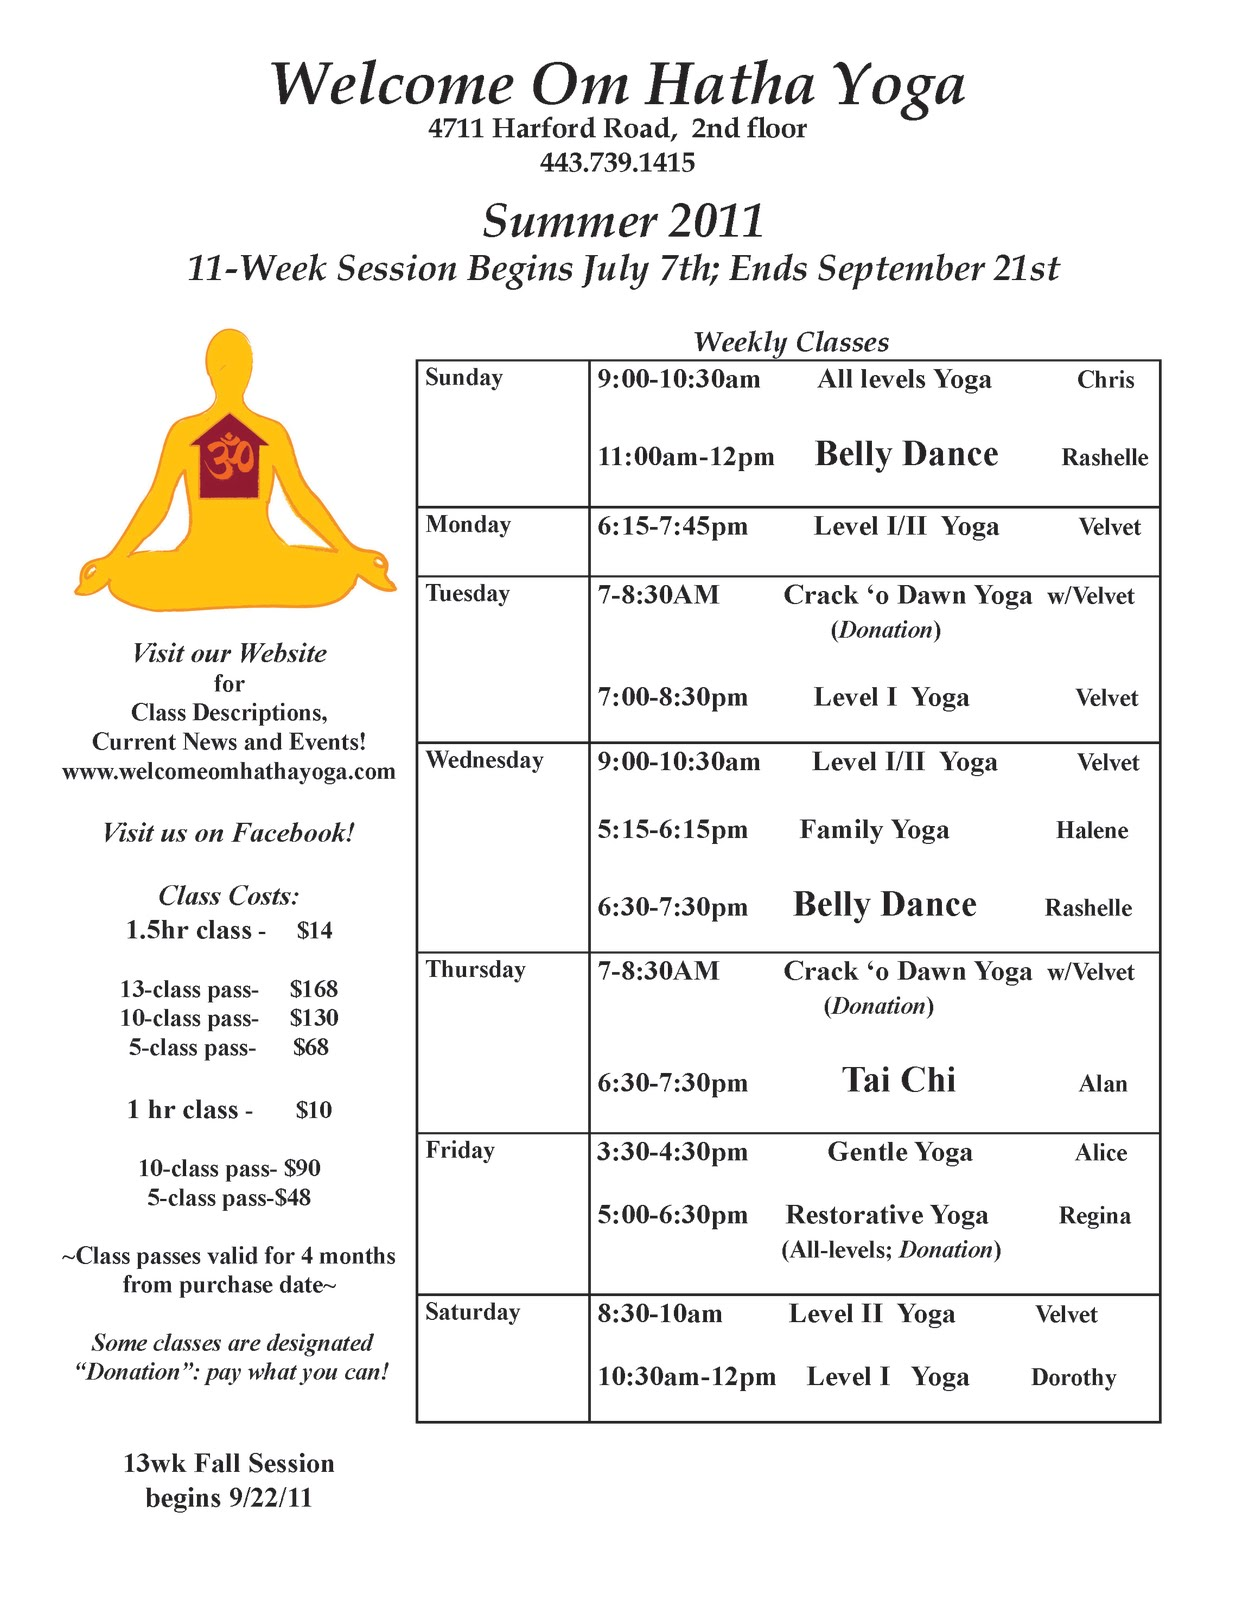 Hamilton lauraville main street news summer 2011 class schedule summer 2011 class schedule at welcome om yoga baltimore 21214 maxwellsz